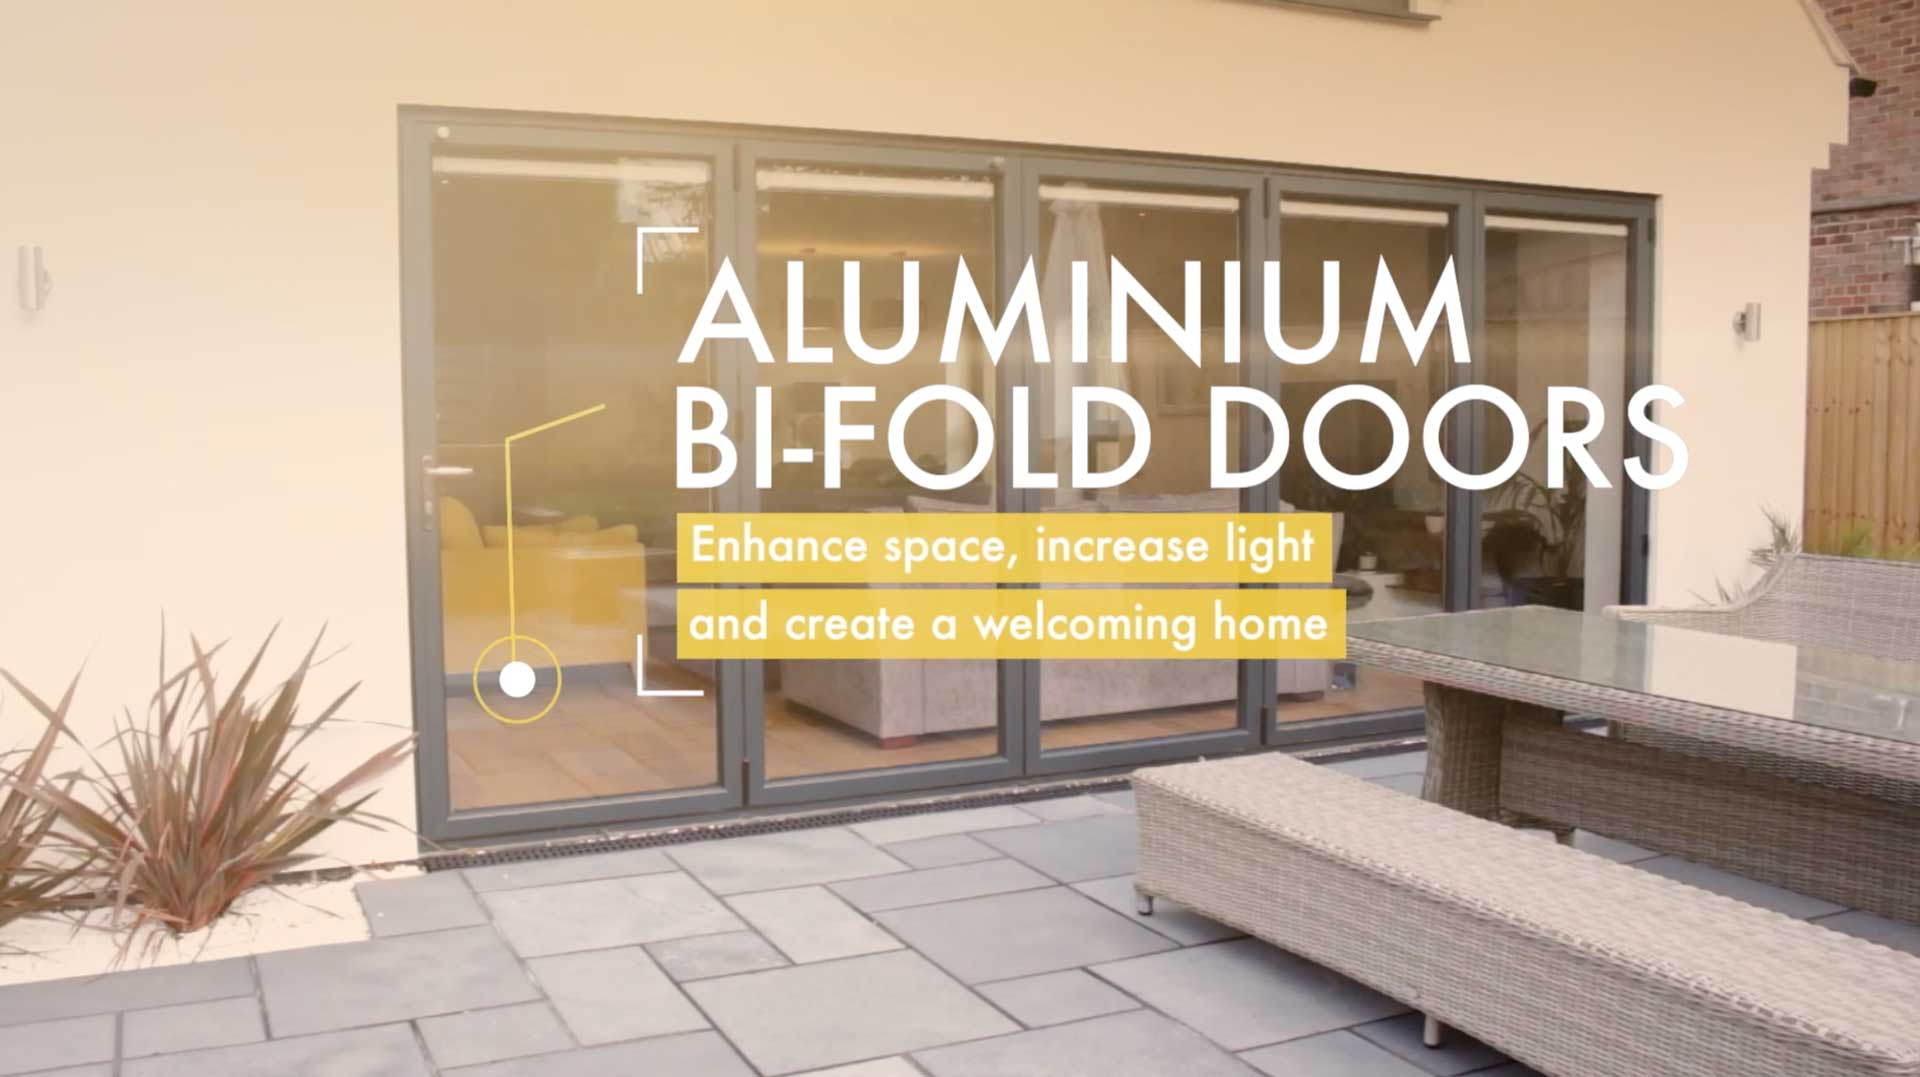 Sternfenster Bi-fold Doors